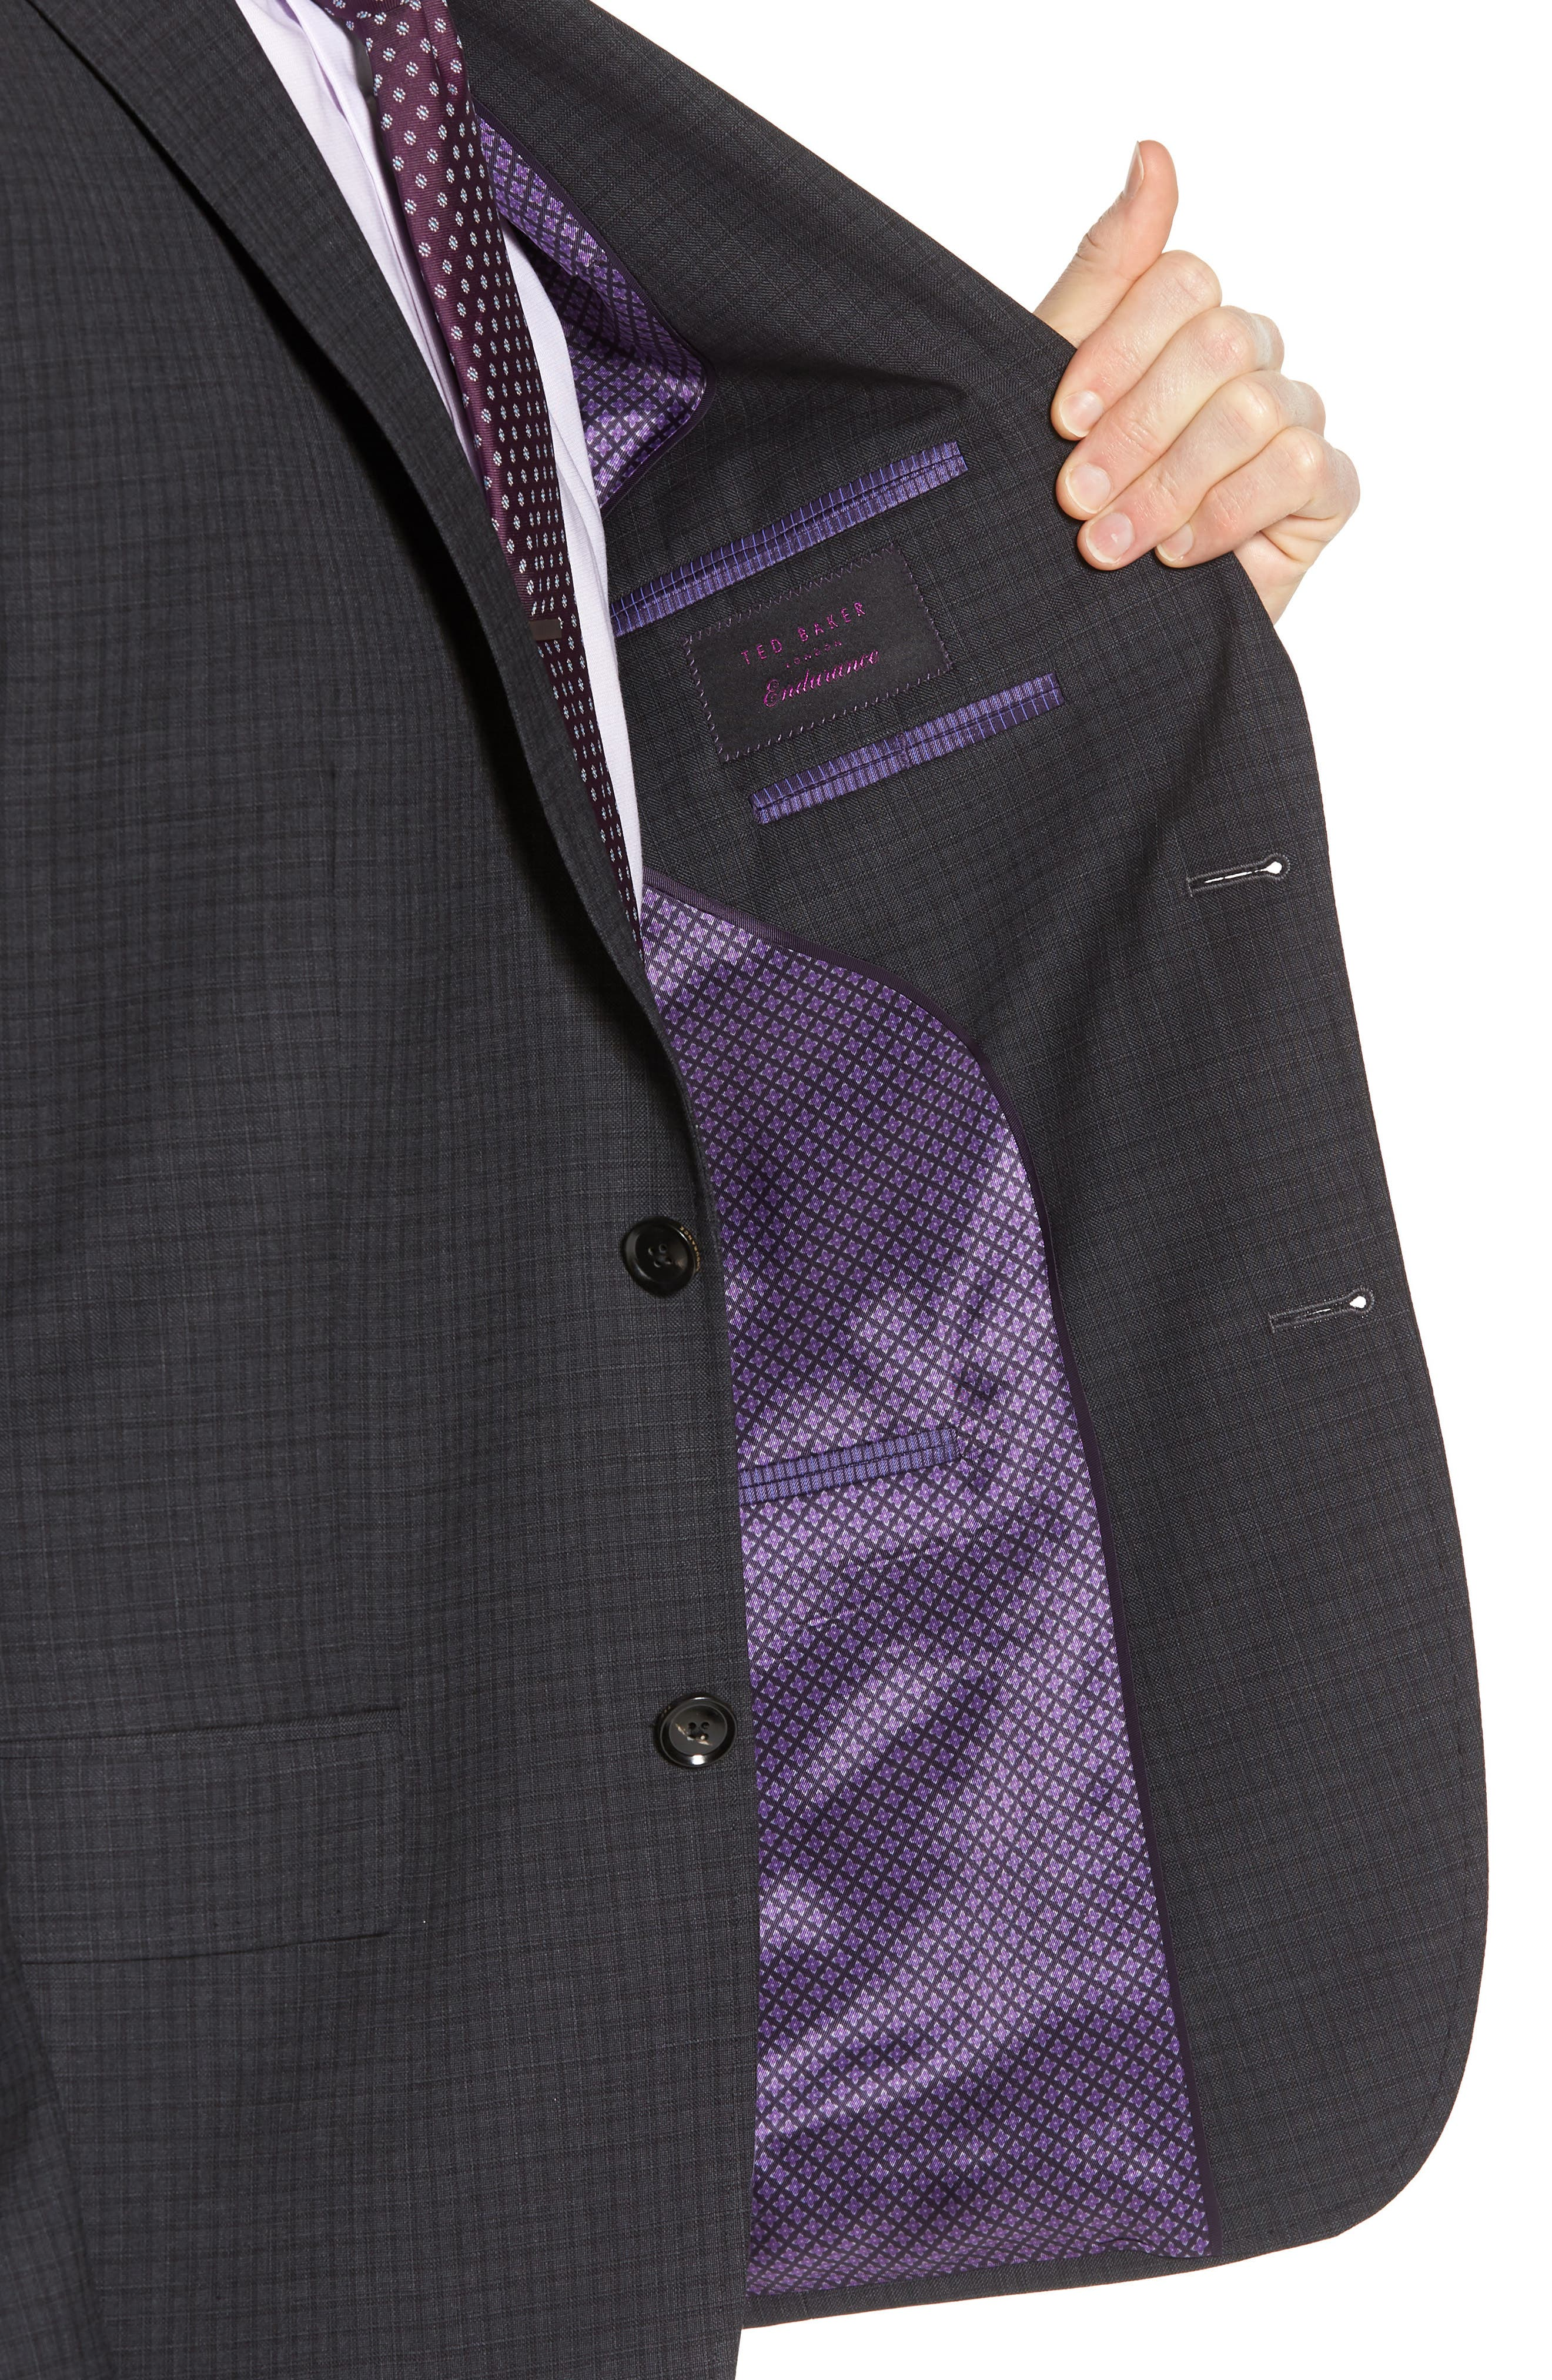 Jay Trim Fit Check Wool Suit,                             Alternate thumbnail 4, color,                             Charcoal